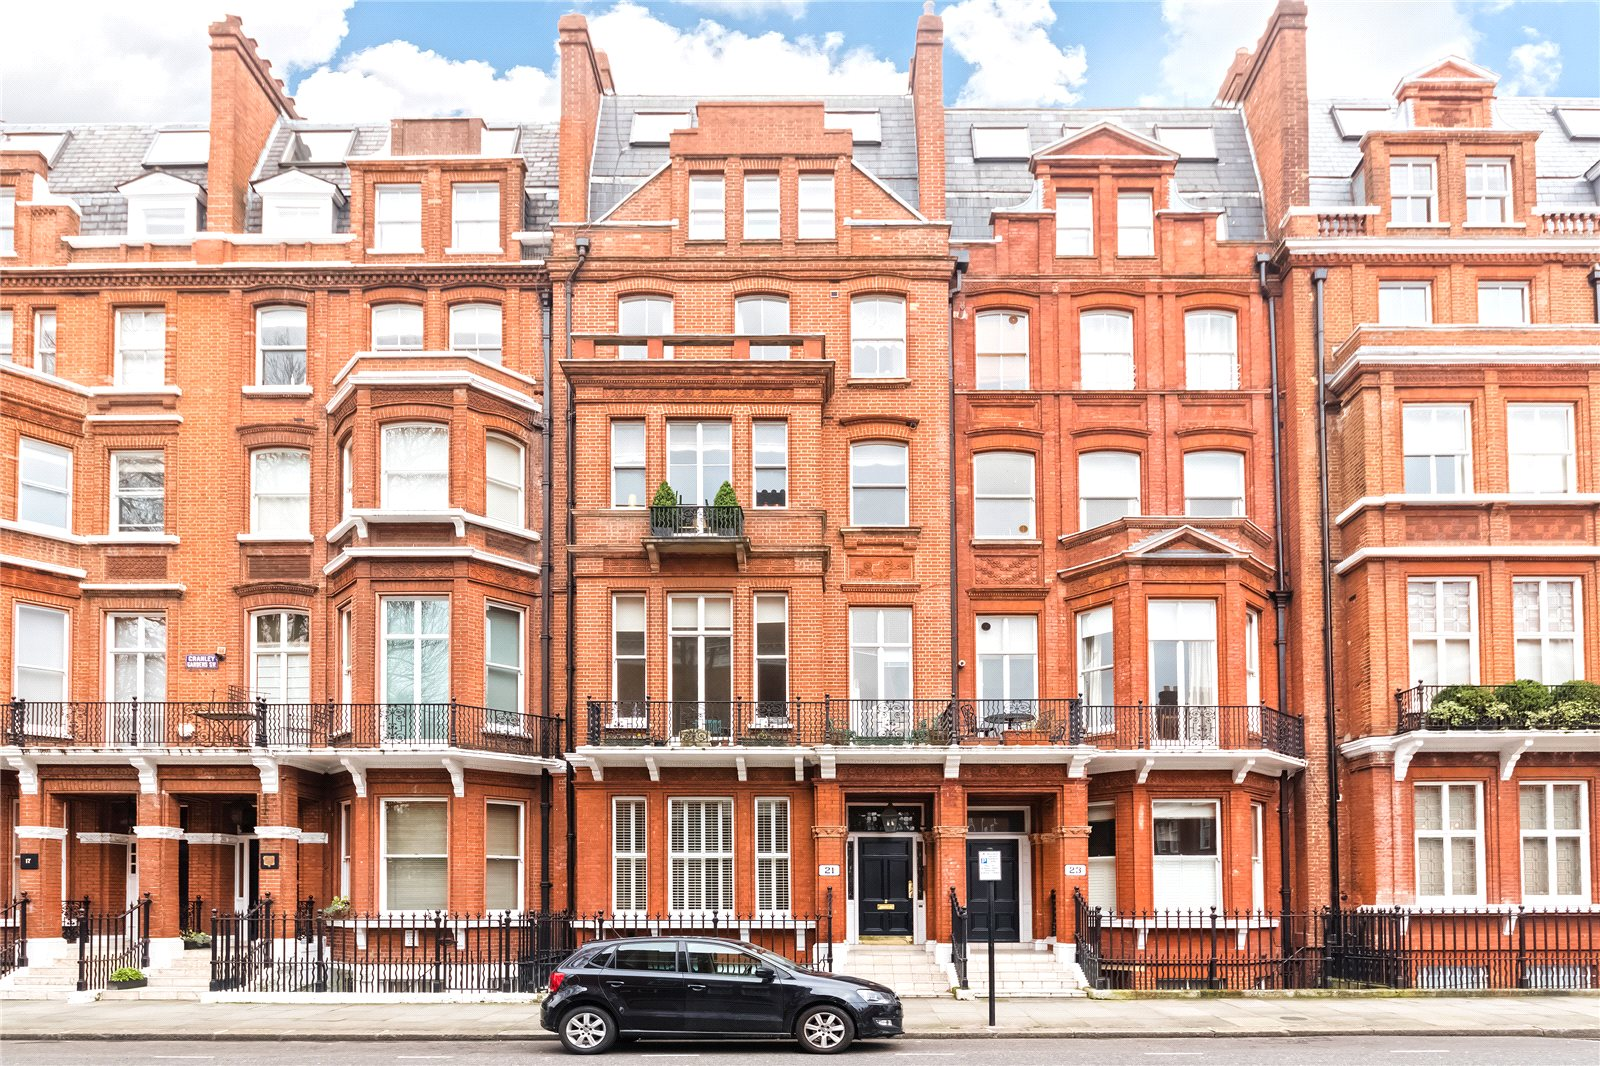 Appartements / Flats pour l Vente à Cranley Gardens, South Kensington, London, SW7 South Kensington, London, Angleterre